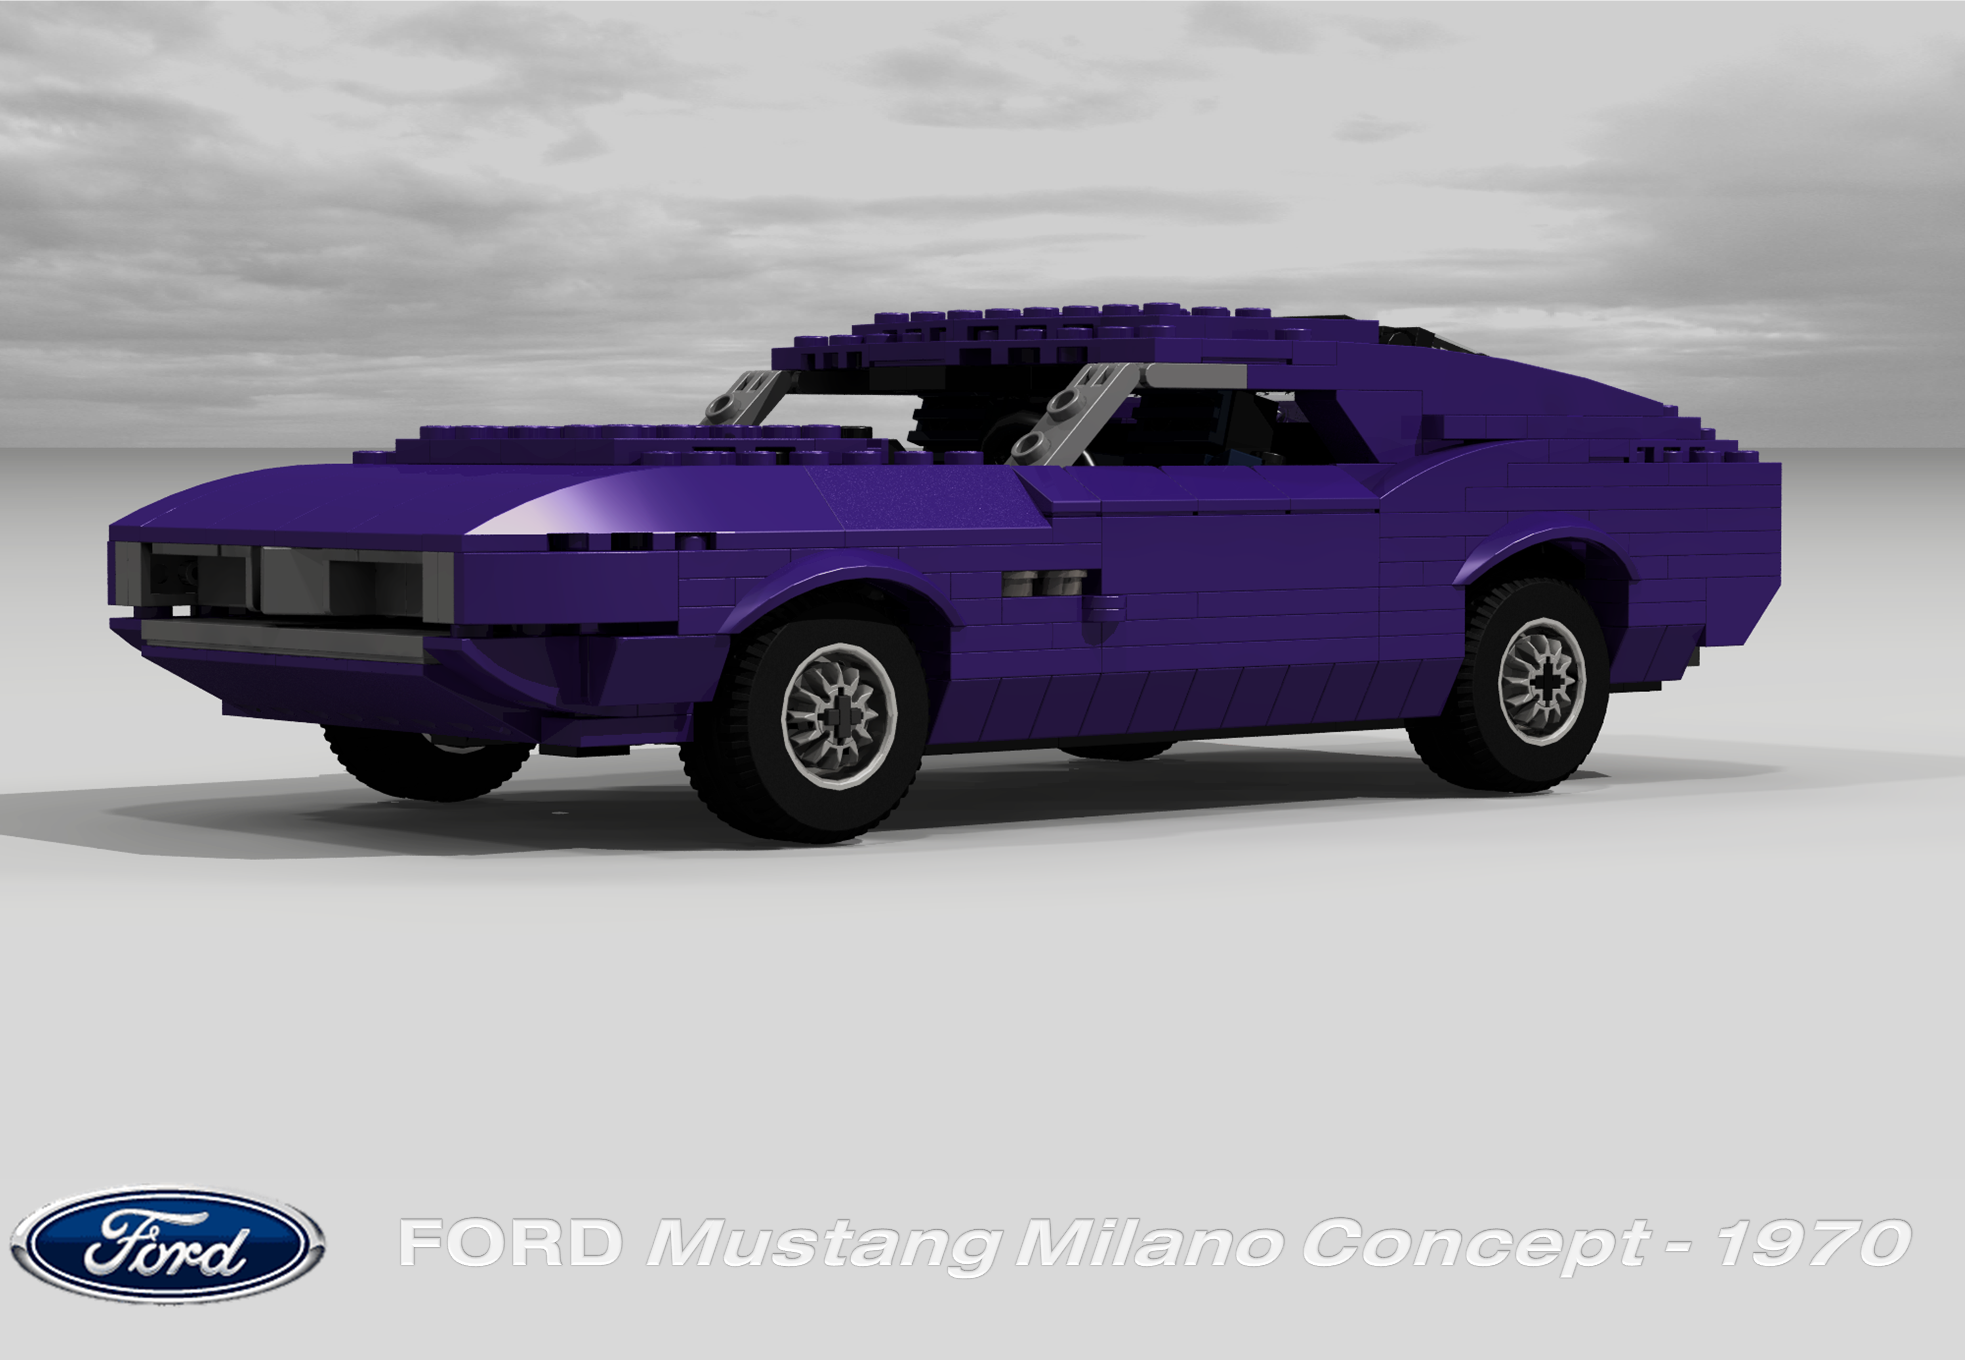 ford_mustang_milano_concept_1970_04.png